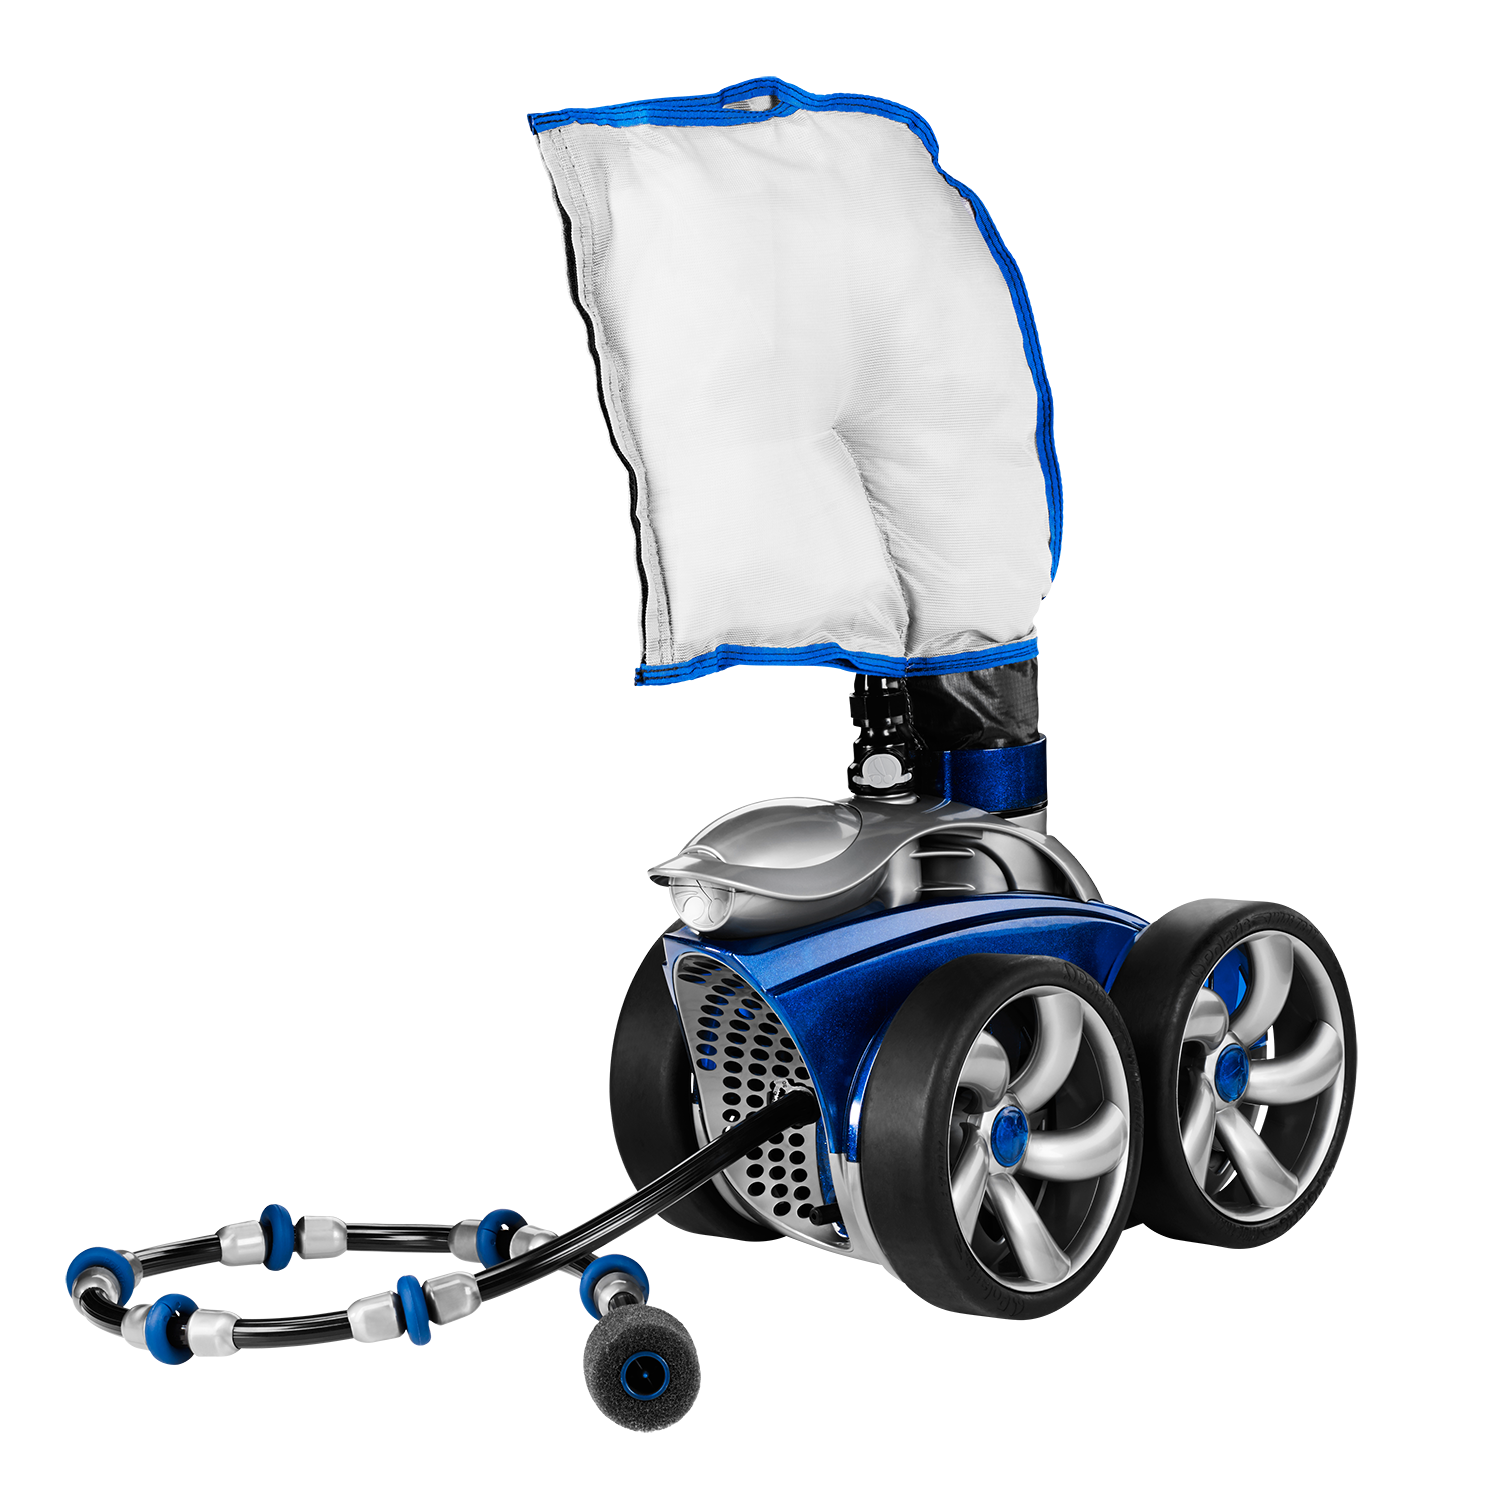 Polaris 3900 Sport Pressure Pool Cleaner | #1 Swimming Pool Cleaner ...